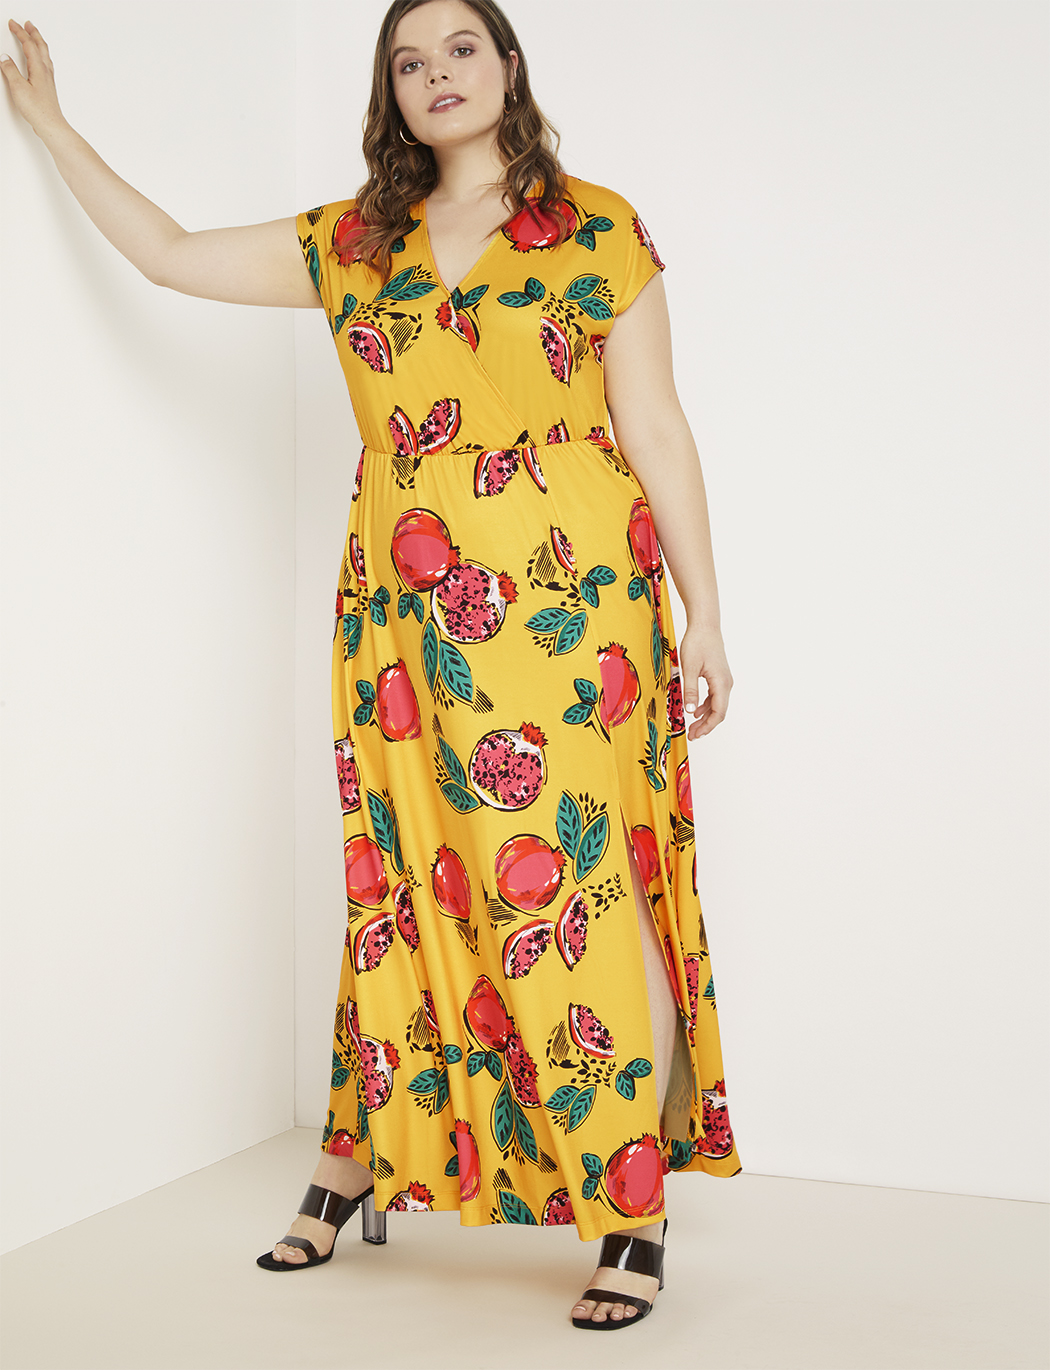 Printed Maxi Dress | Women\'s Plus Size Dresses | ELOQUII